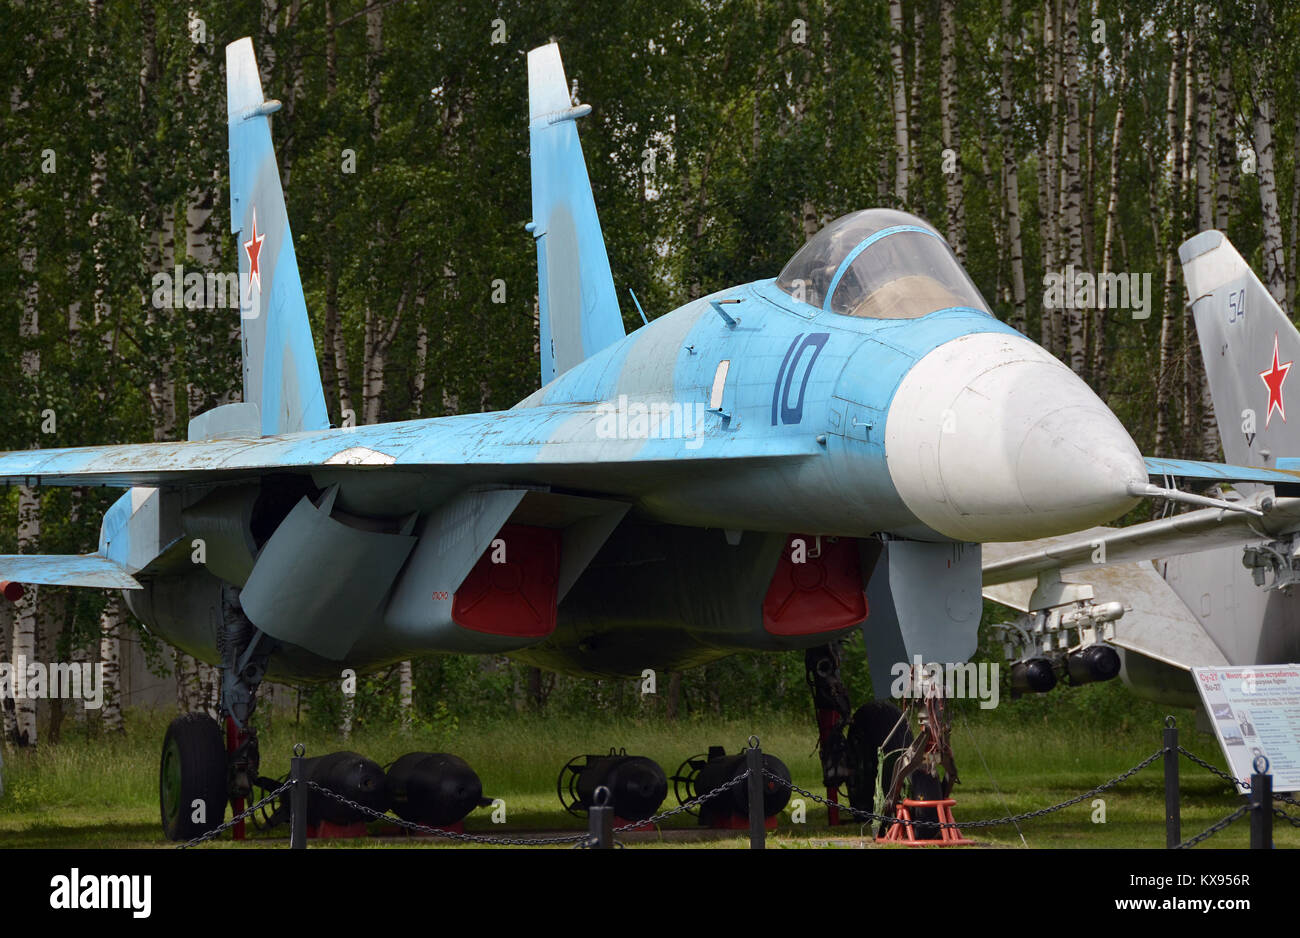 A Sukhoi Su-27 fighter on display at the Monino airfield museum. - Stock Image